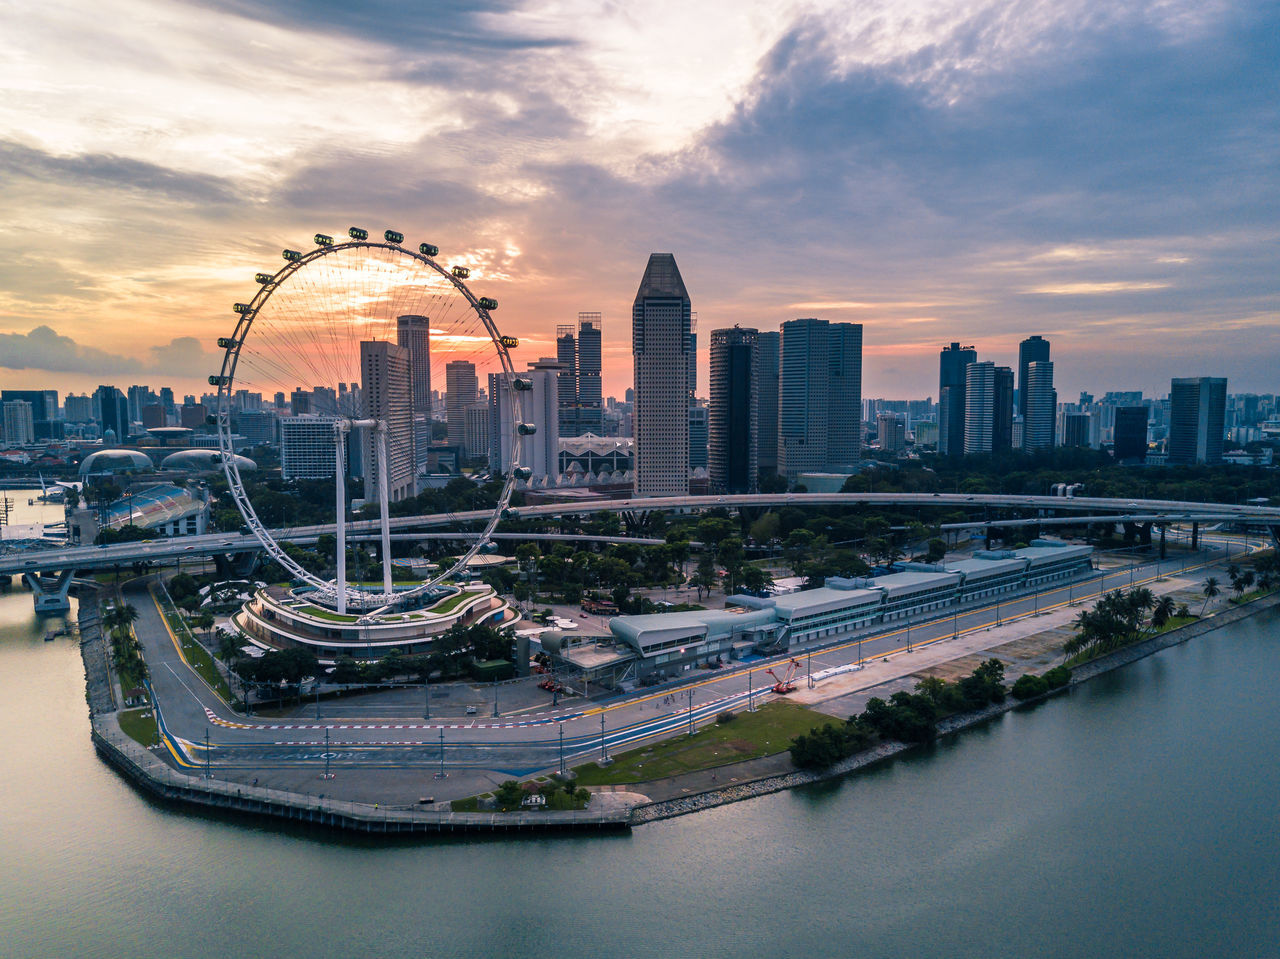 Architecture Building Exterior Built Structure City Cityscape Cloud - Sky Day Drone  Dronephotography Marina Bay Modern Nature No People Outdoors Sky Skyscraper Sunset Travel Destinations Urban Skyline Water Waterfront